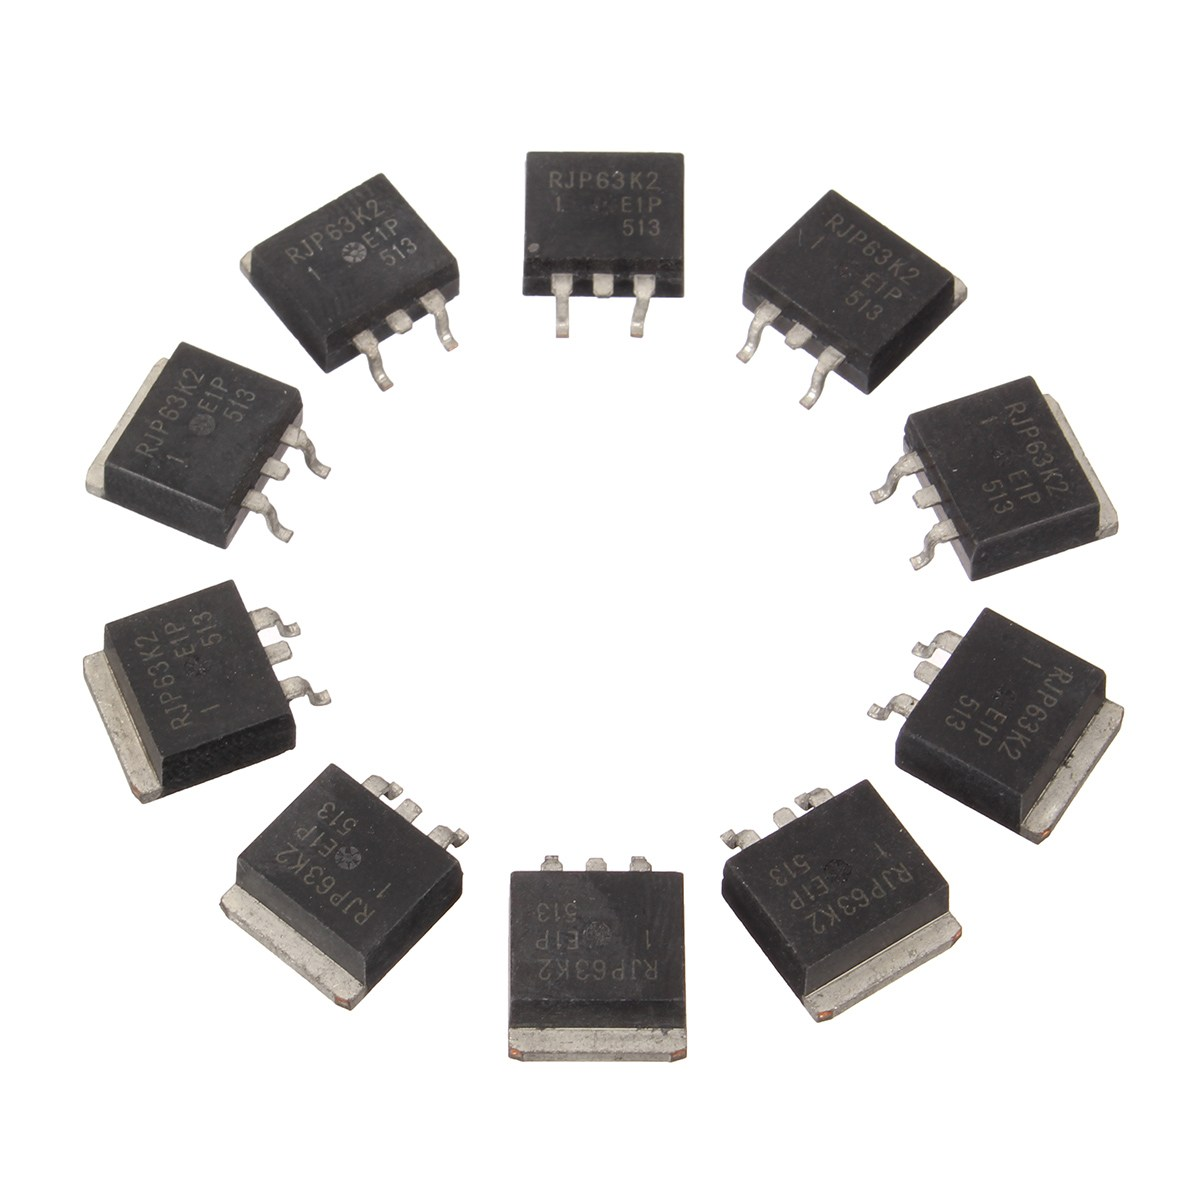 10pcs Hot Sale Rjp63k2 To 263 63k2 To263 Ic Chip Integrated Circuits Circuit Electronic Components In From Supplies On